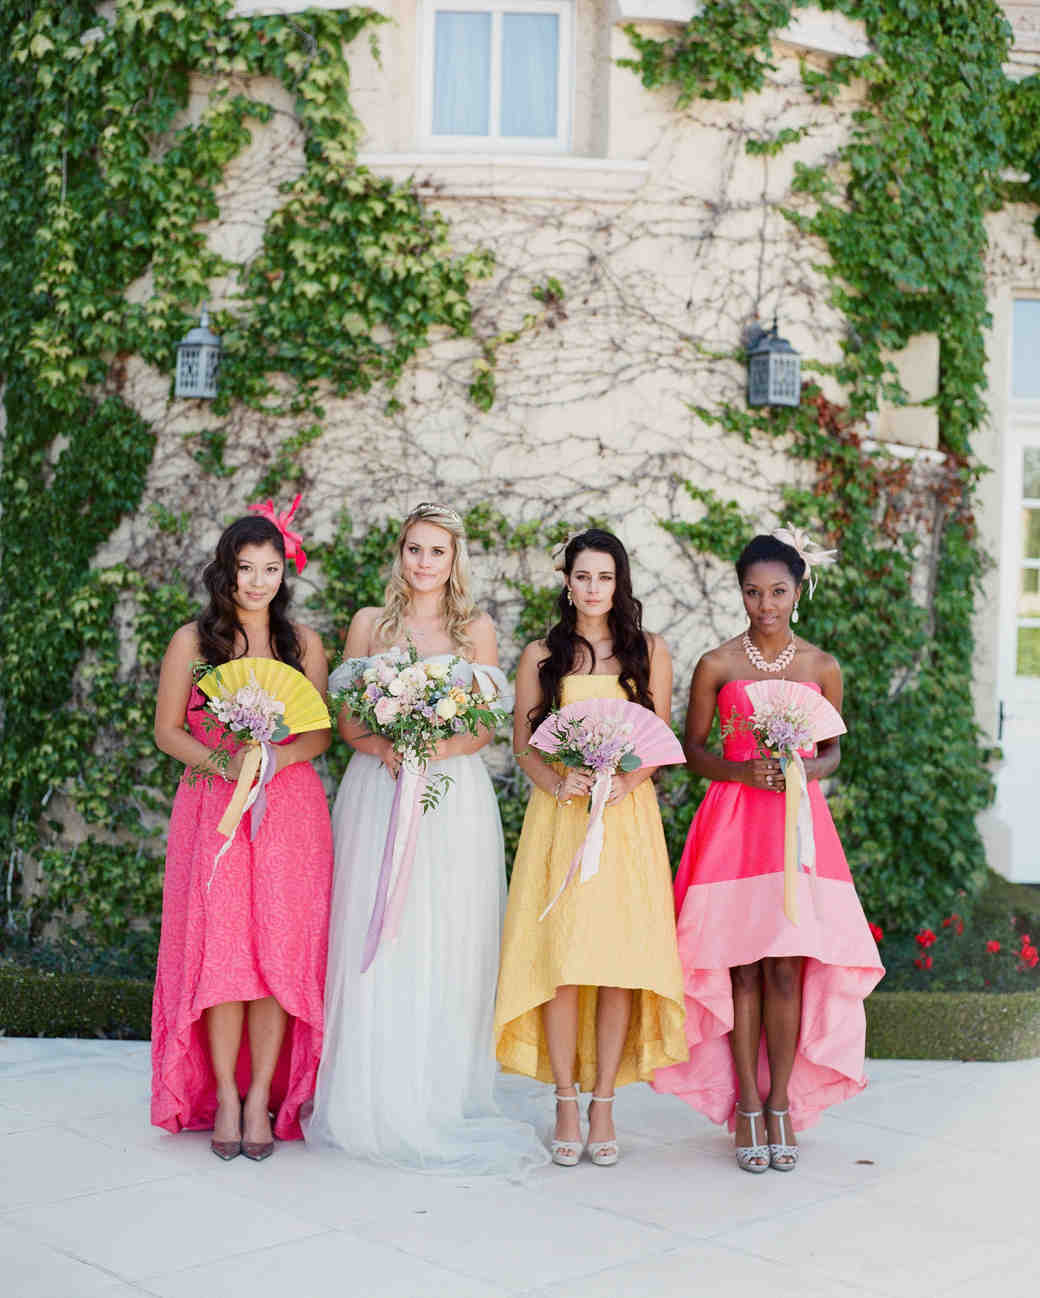 2489245a636eb 28 Mismatched Bridesmaids Dresses from Real Weddings - Best Mix and Match Bridesmaids  Dresses